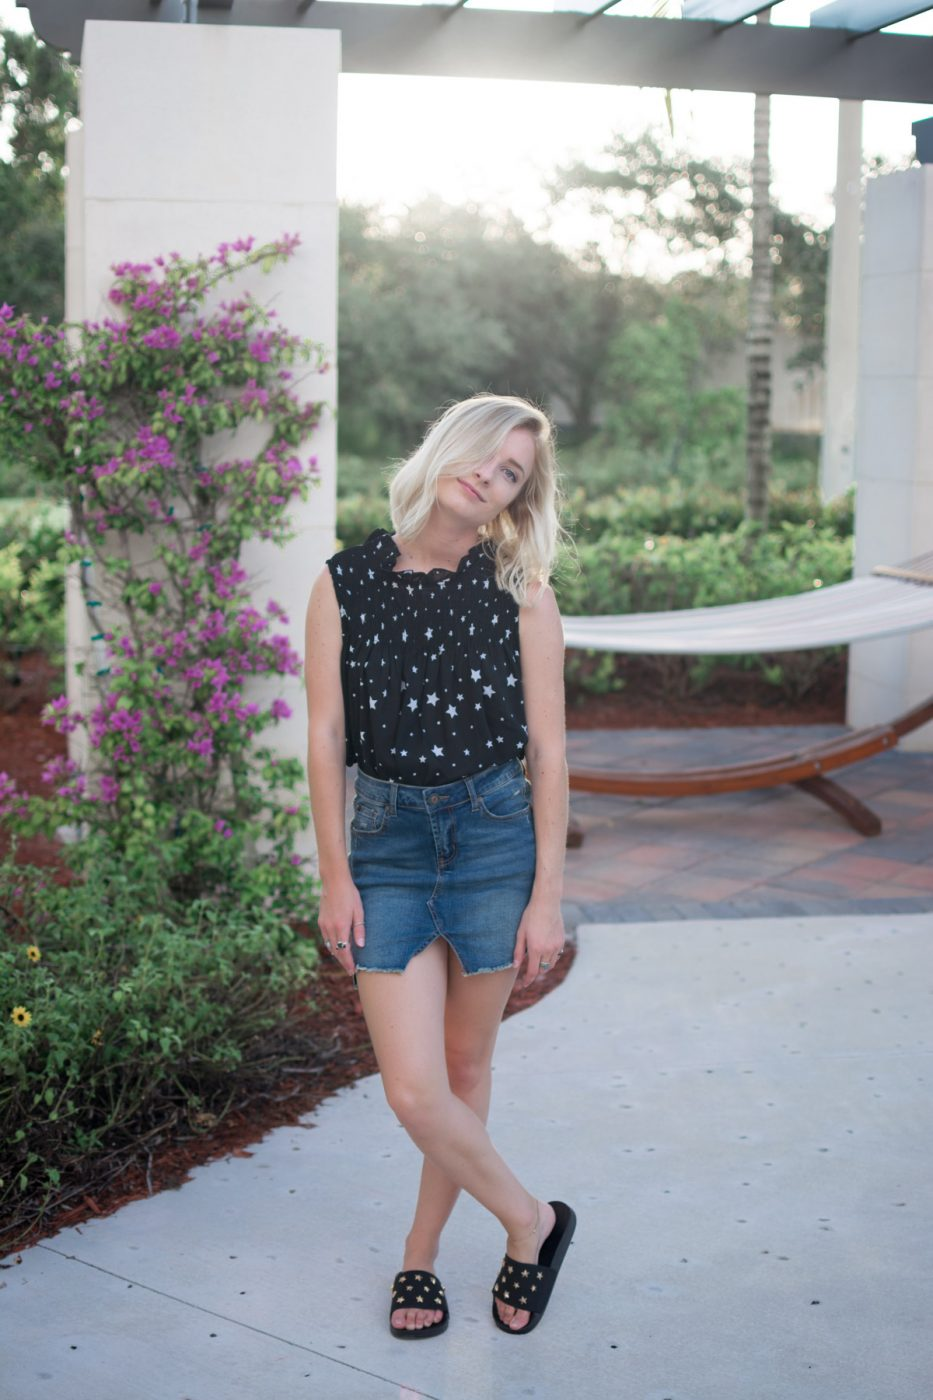 Jenny of Sweet Teal wearing Charlotte Russe Denim Skirt & Star Shirt Outfit